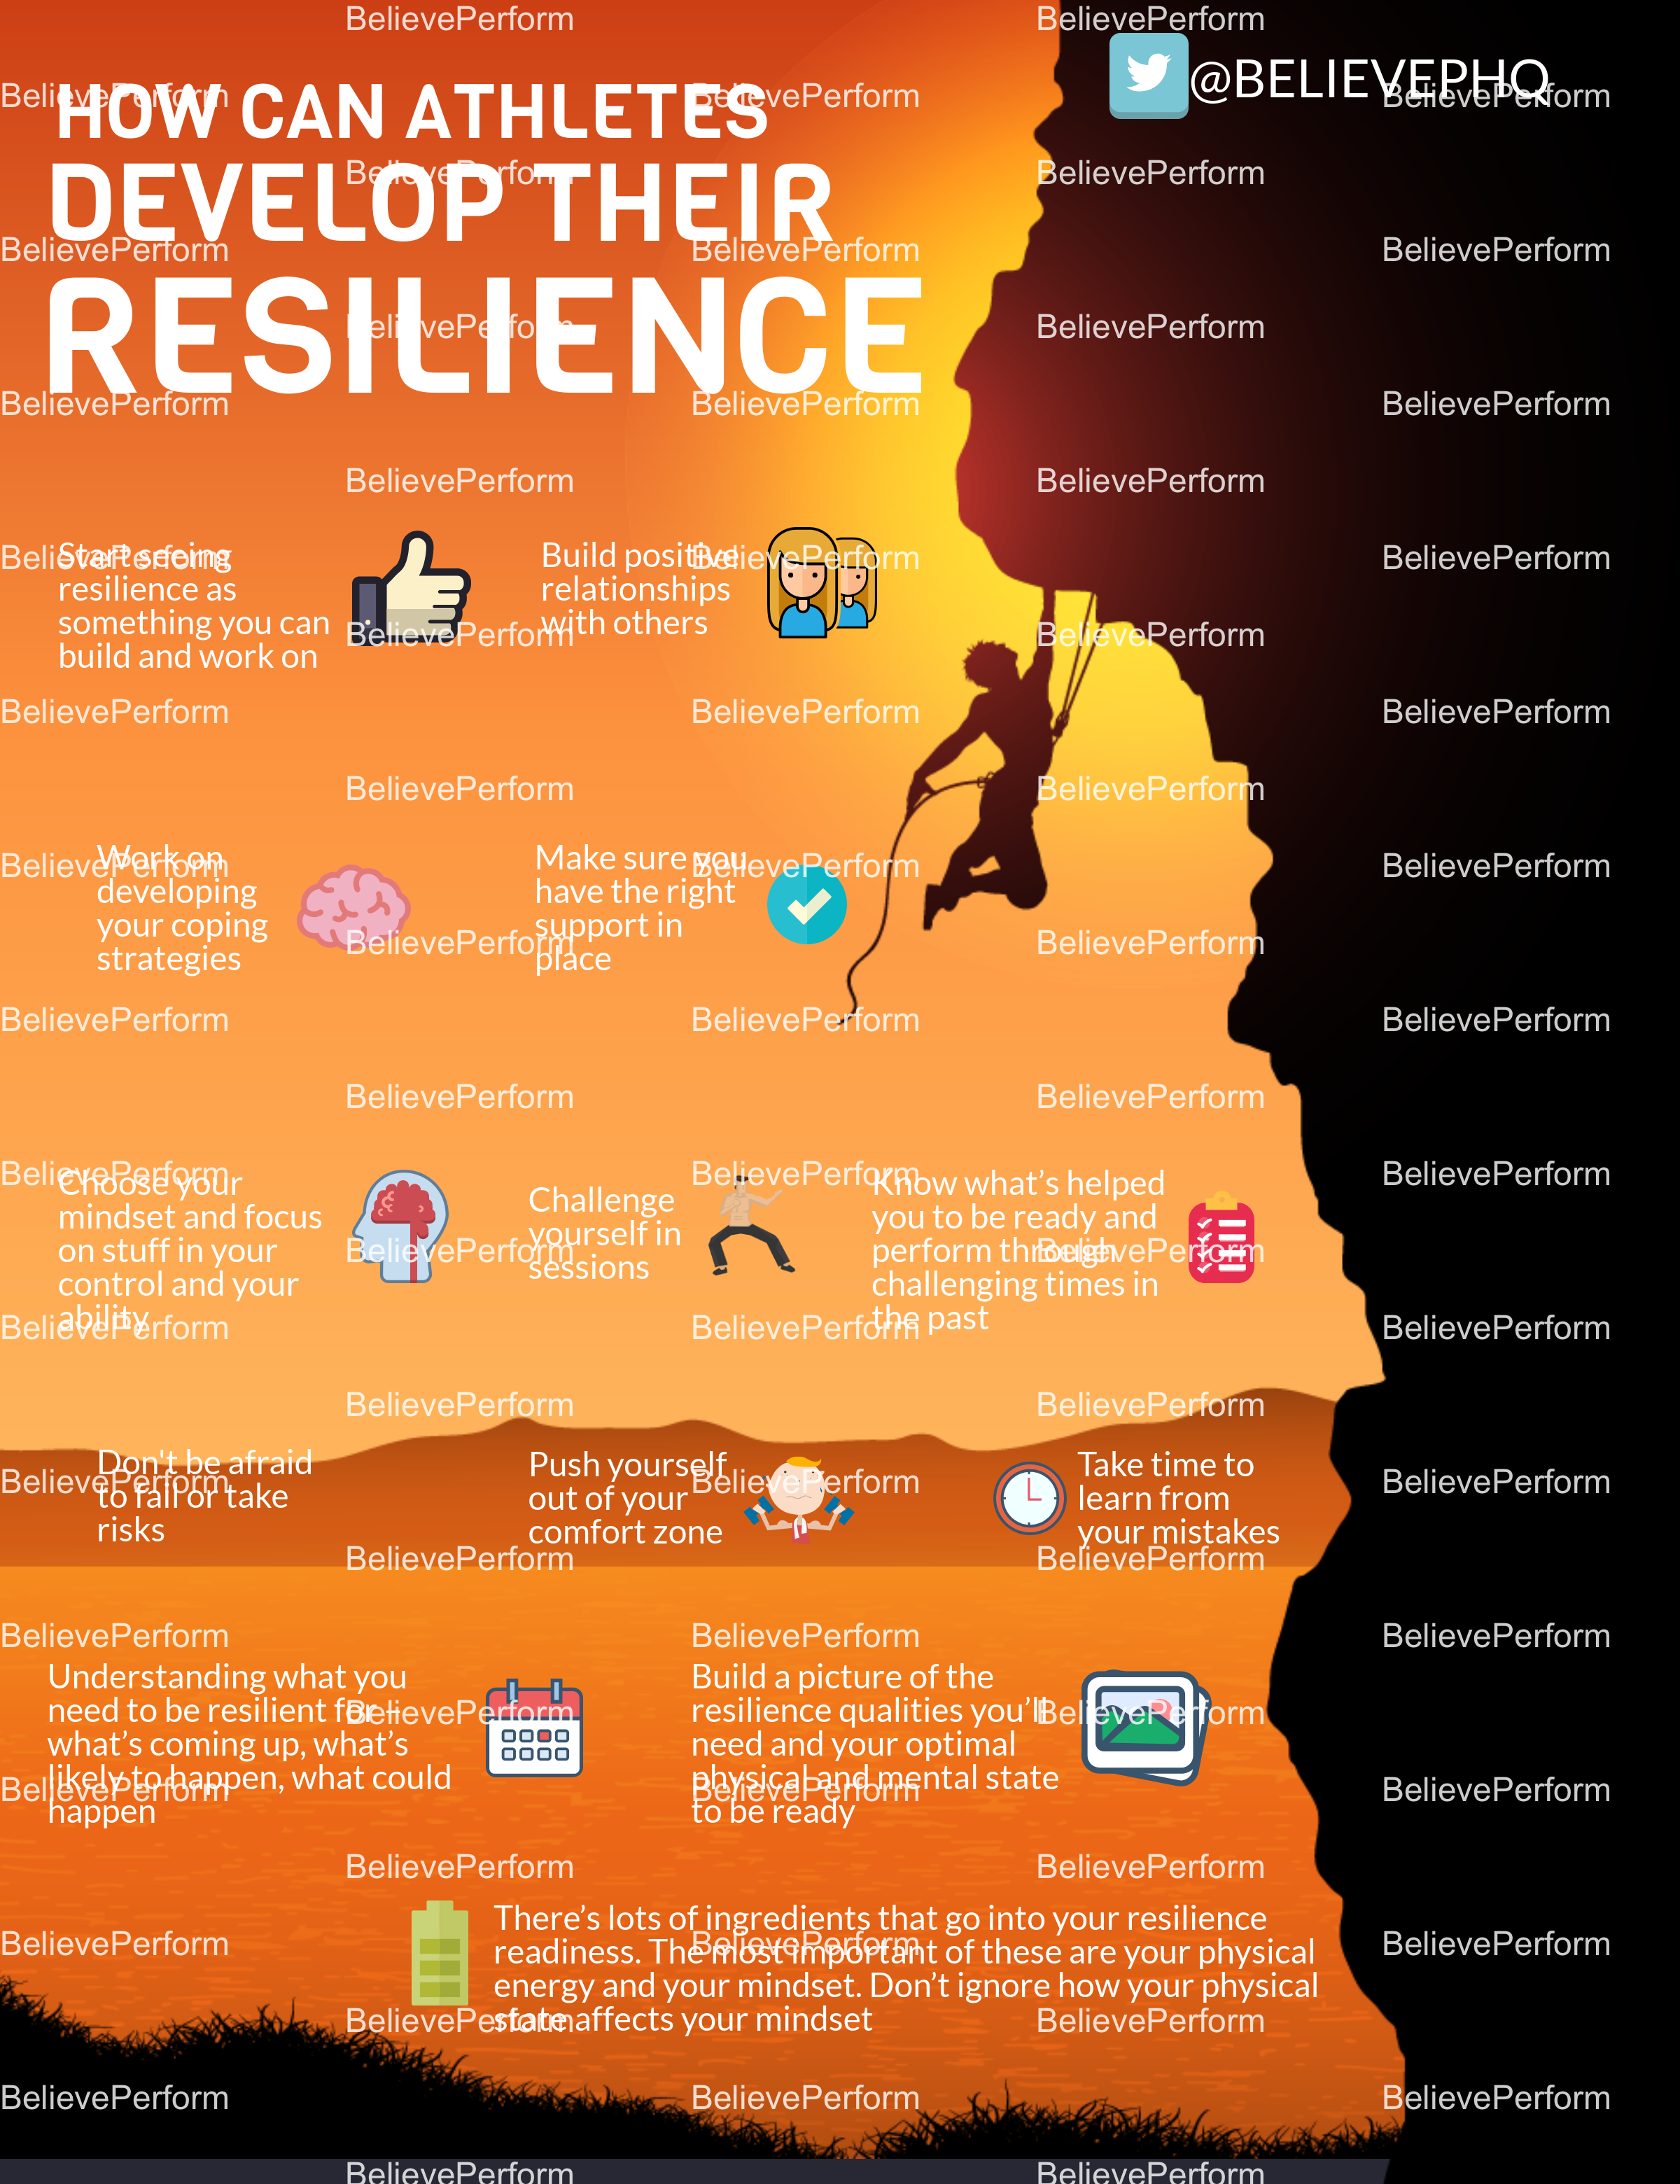 How can athletes develop their resilience